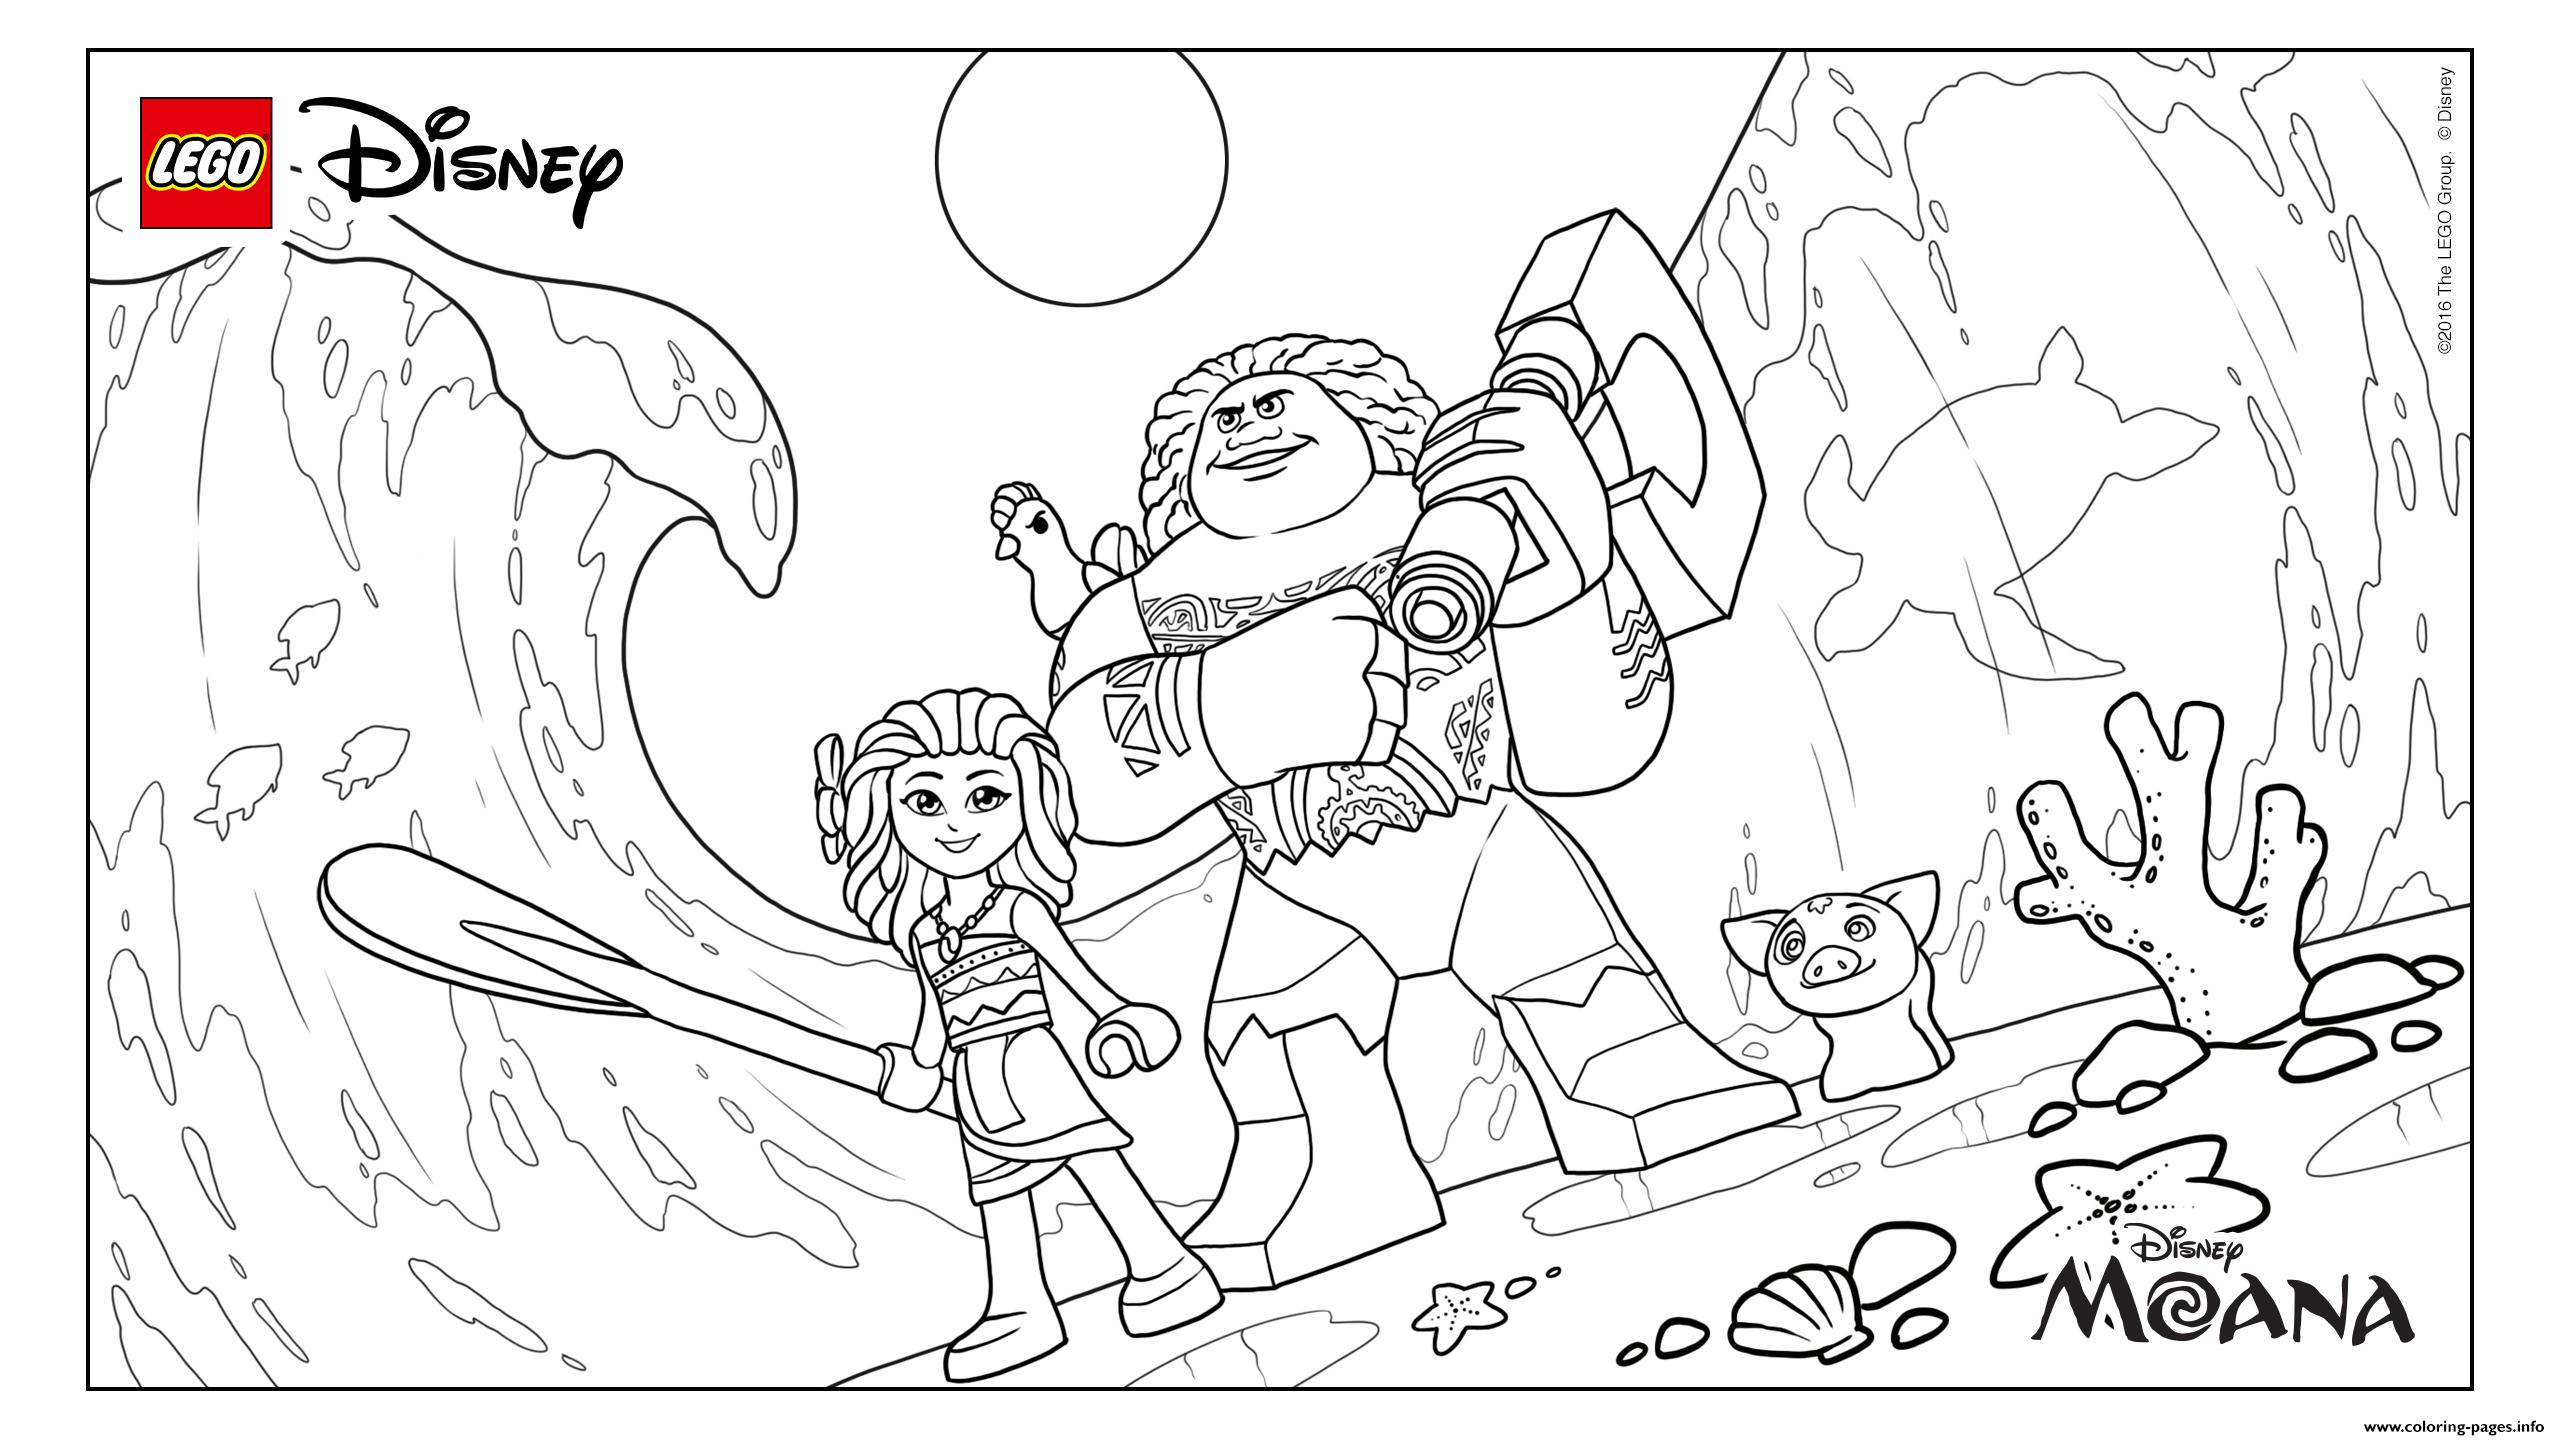 lego moana disney movie Coloring pages Printable